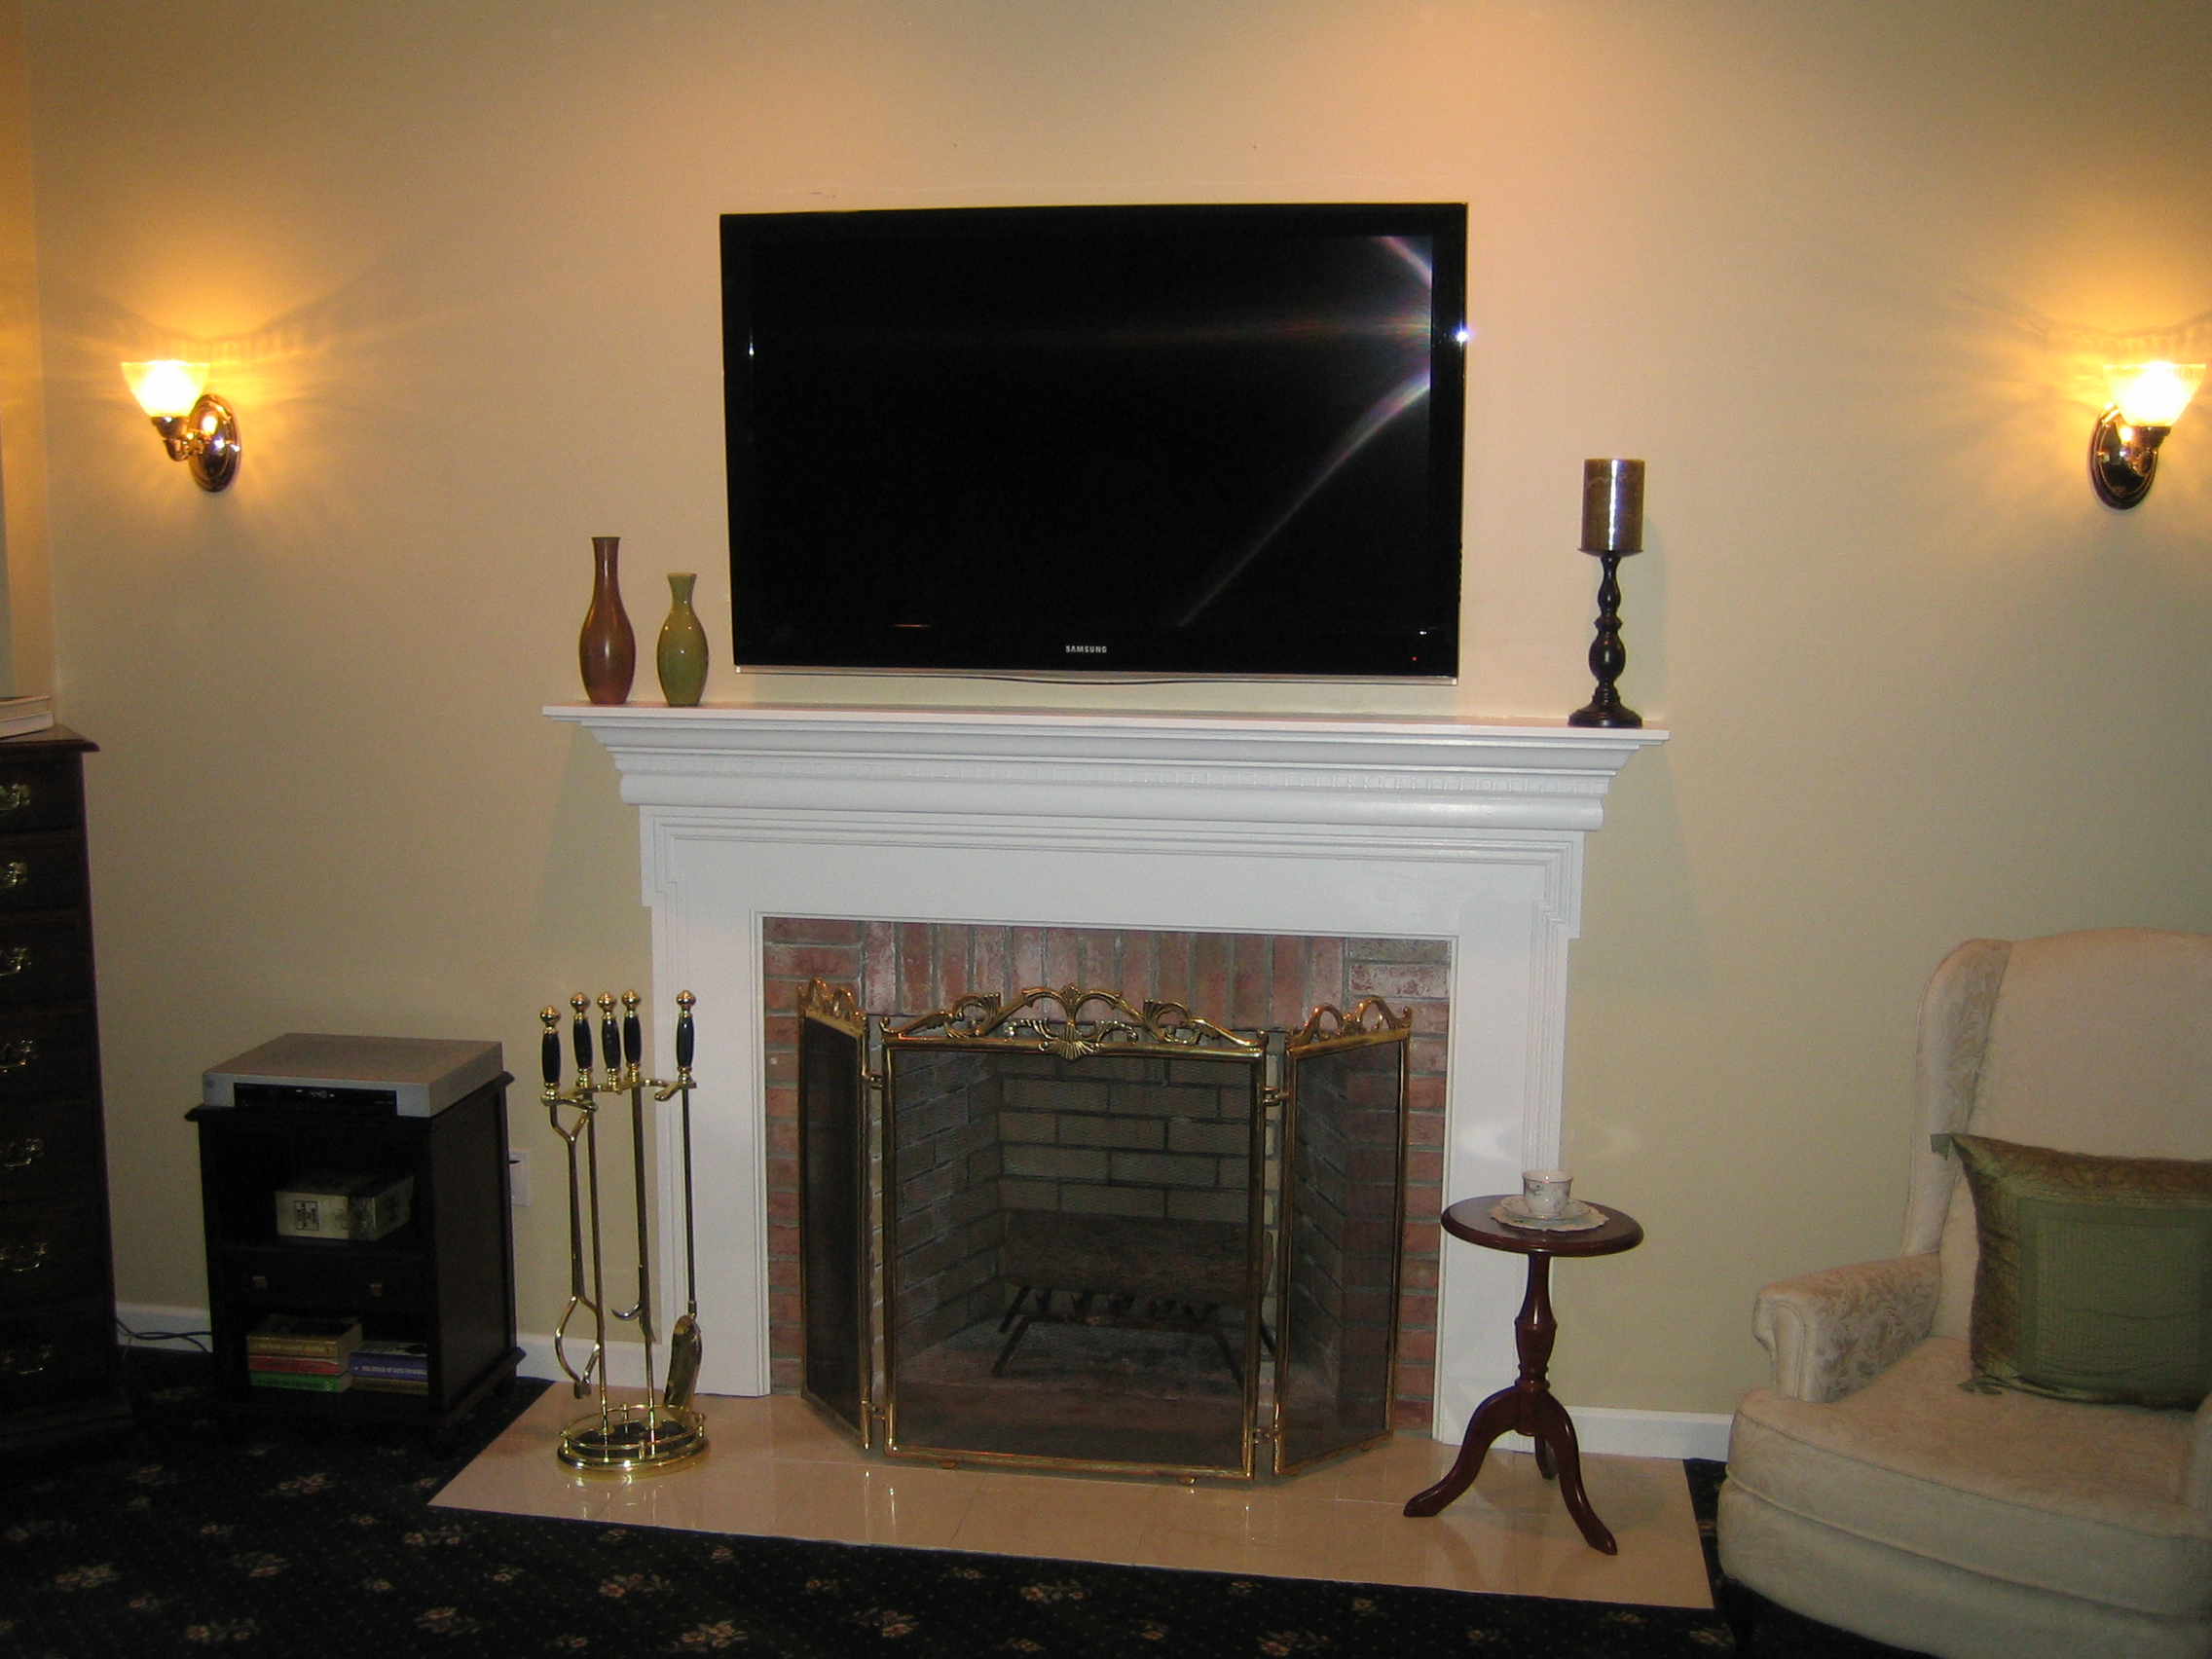 clinton ct mount tv above fireplace home theater installation